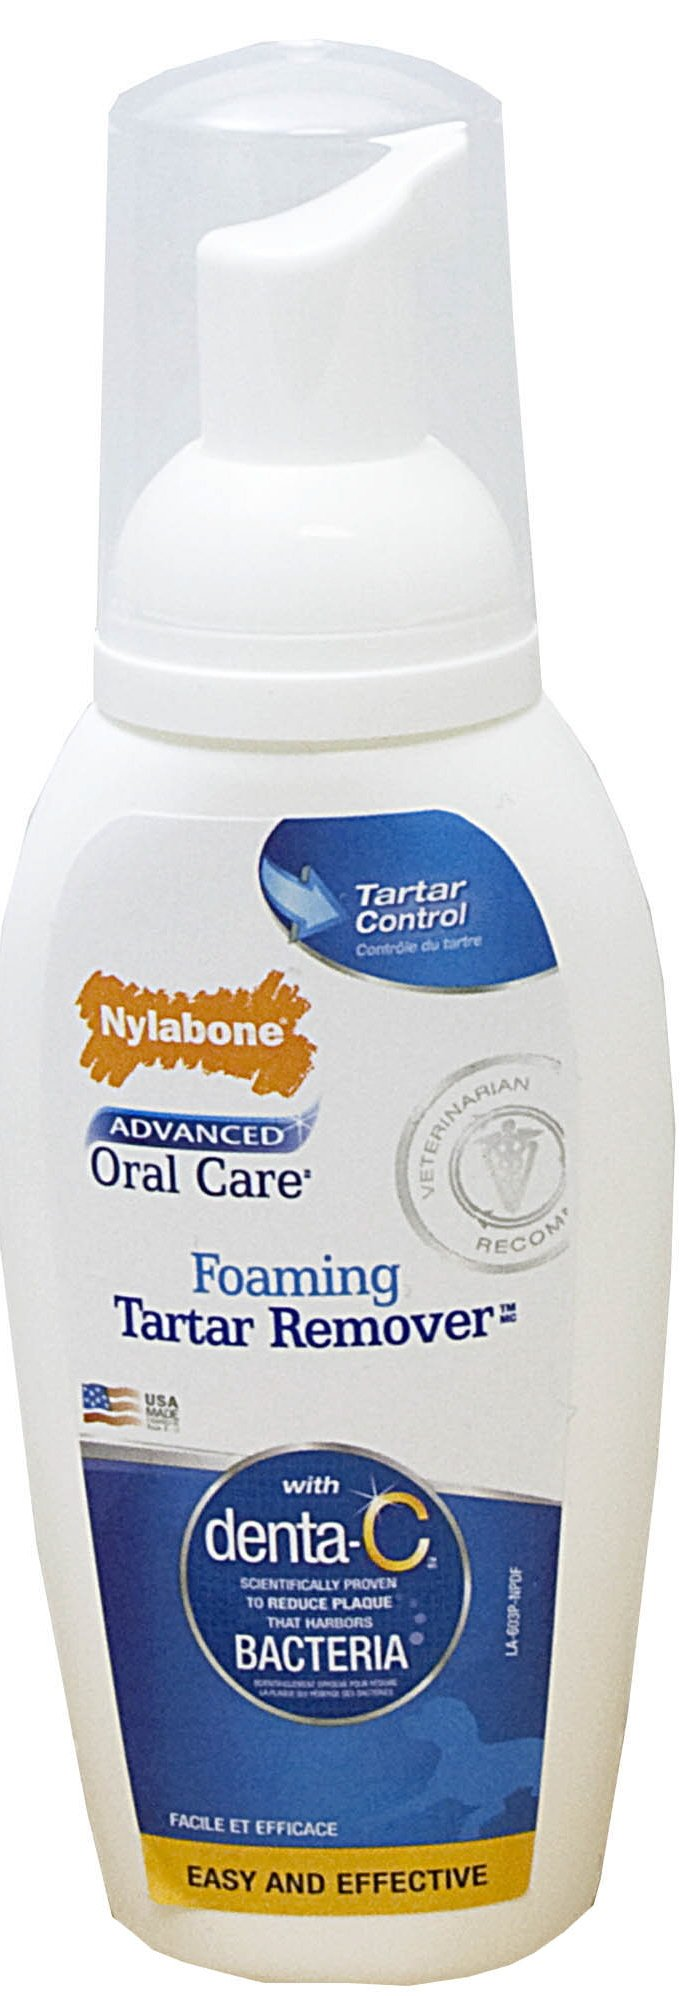 Nylabone Advanced Oral Care Foaming Tartar Remover for Dogs, 4 oz.